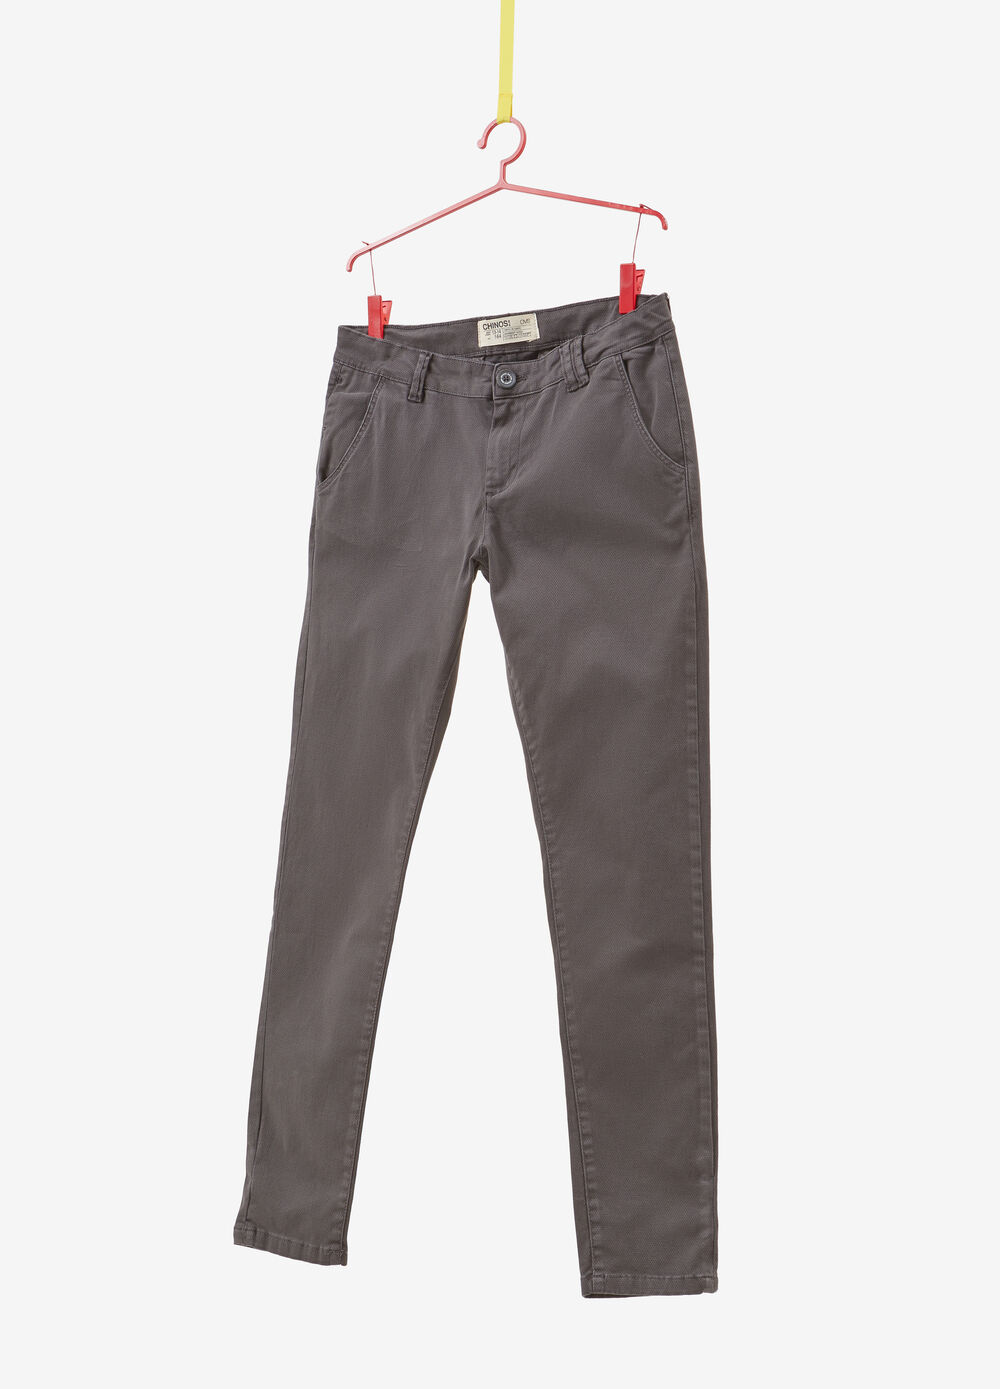 Stretch cotton chino trousers with polka dot print